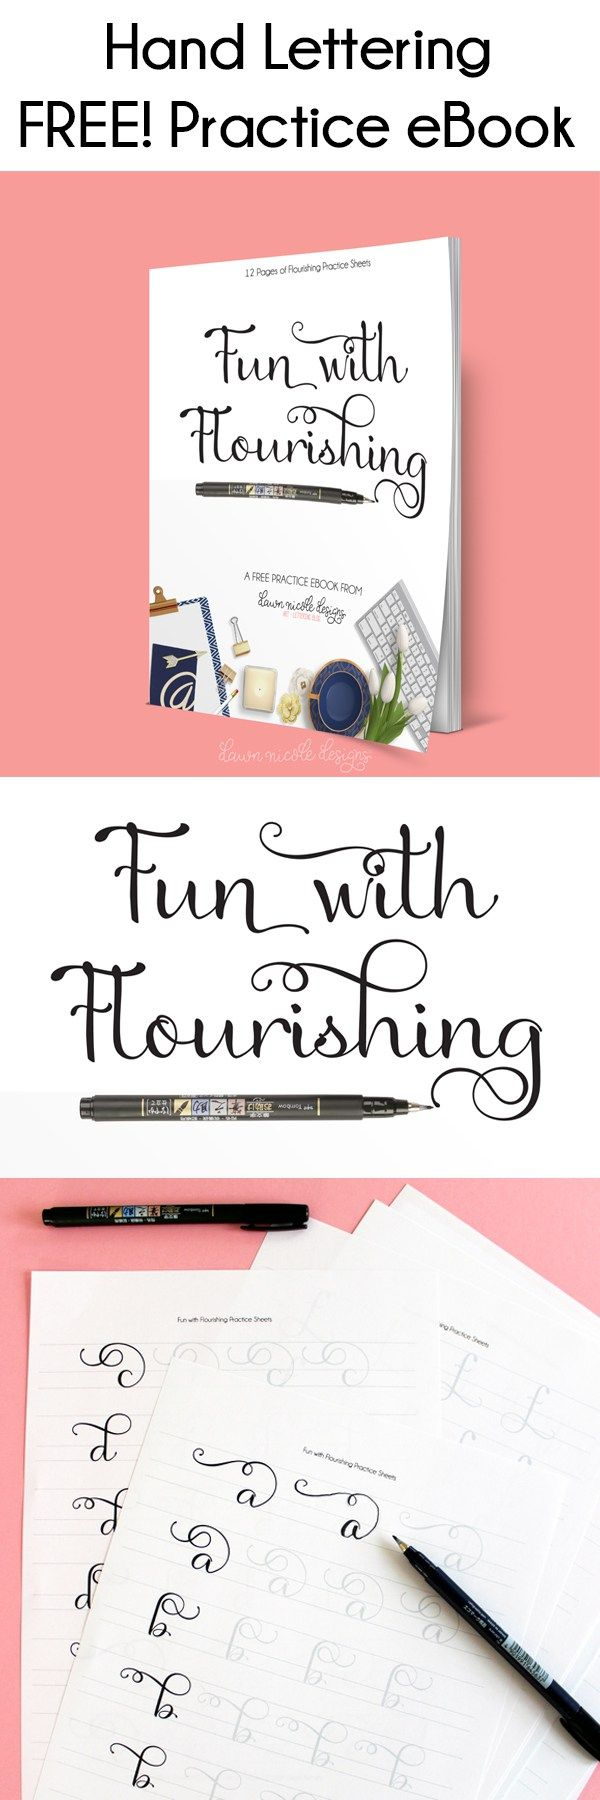 Fun with Flourishing: Free Hand Lettering eBook. Work on your flourishes with the twelve pages of practice sheets in this free eBook! #handlettering